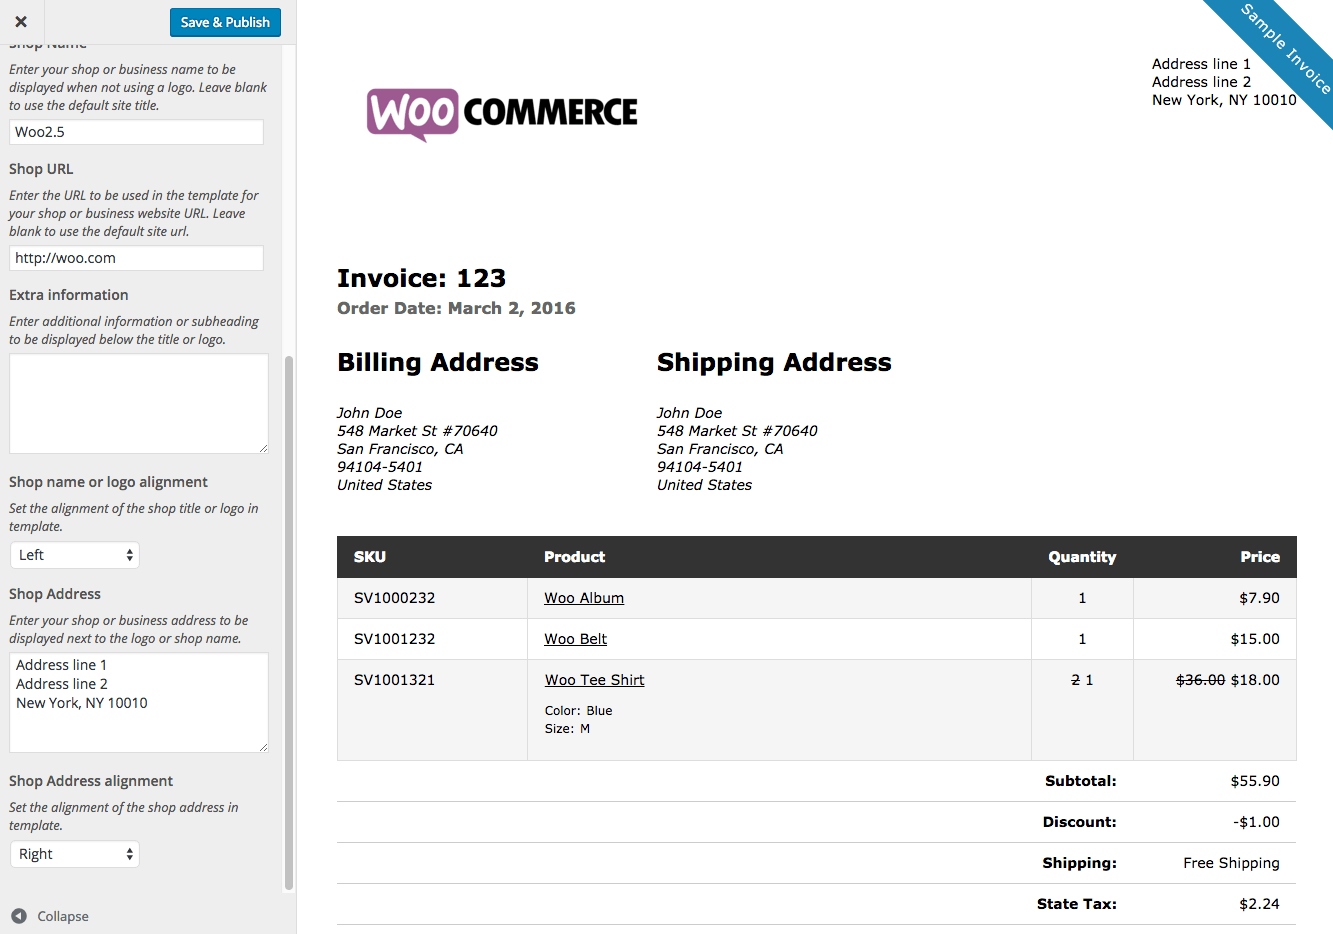 Weverducreus  Winning Print Invoices Amp Packing Lists  Woocommerce With Fetching Woocommerce Print Invoices  Packing Lists Customizer With Attractive Morrisons Receipt Also Receipt Template Mac In Addition Lic Payment Online Receipt And Sample Of Receipt Book As Well As Breakfast Receipt Additionally Online Receipt Storage From Woocommercecom With Weverducreus  Fetching Print Invoices Amp Packing Lists  Woocommerce With Attractive Woocommerce Print Invoices  Packing Lists Customizer And Winning Morrisons Receipt Also Receipt Template Mac In Addition Lic Payment Online Receipt From Woocommercecom